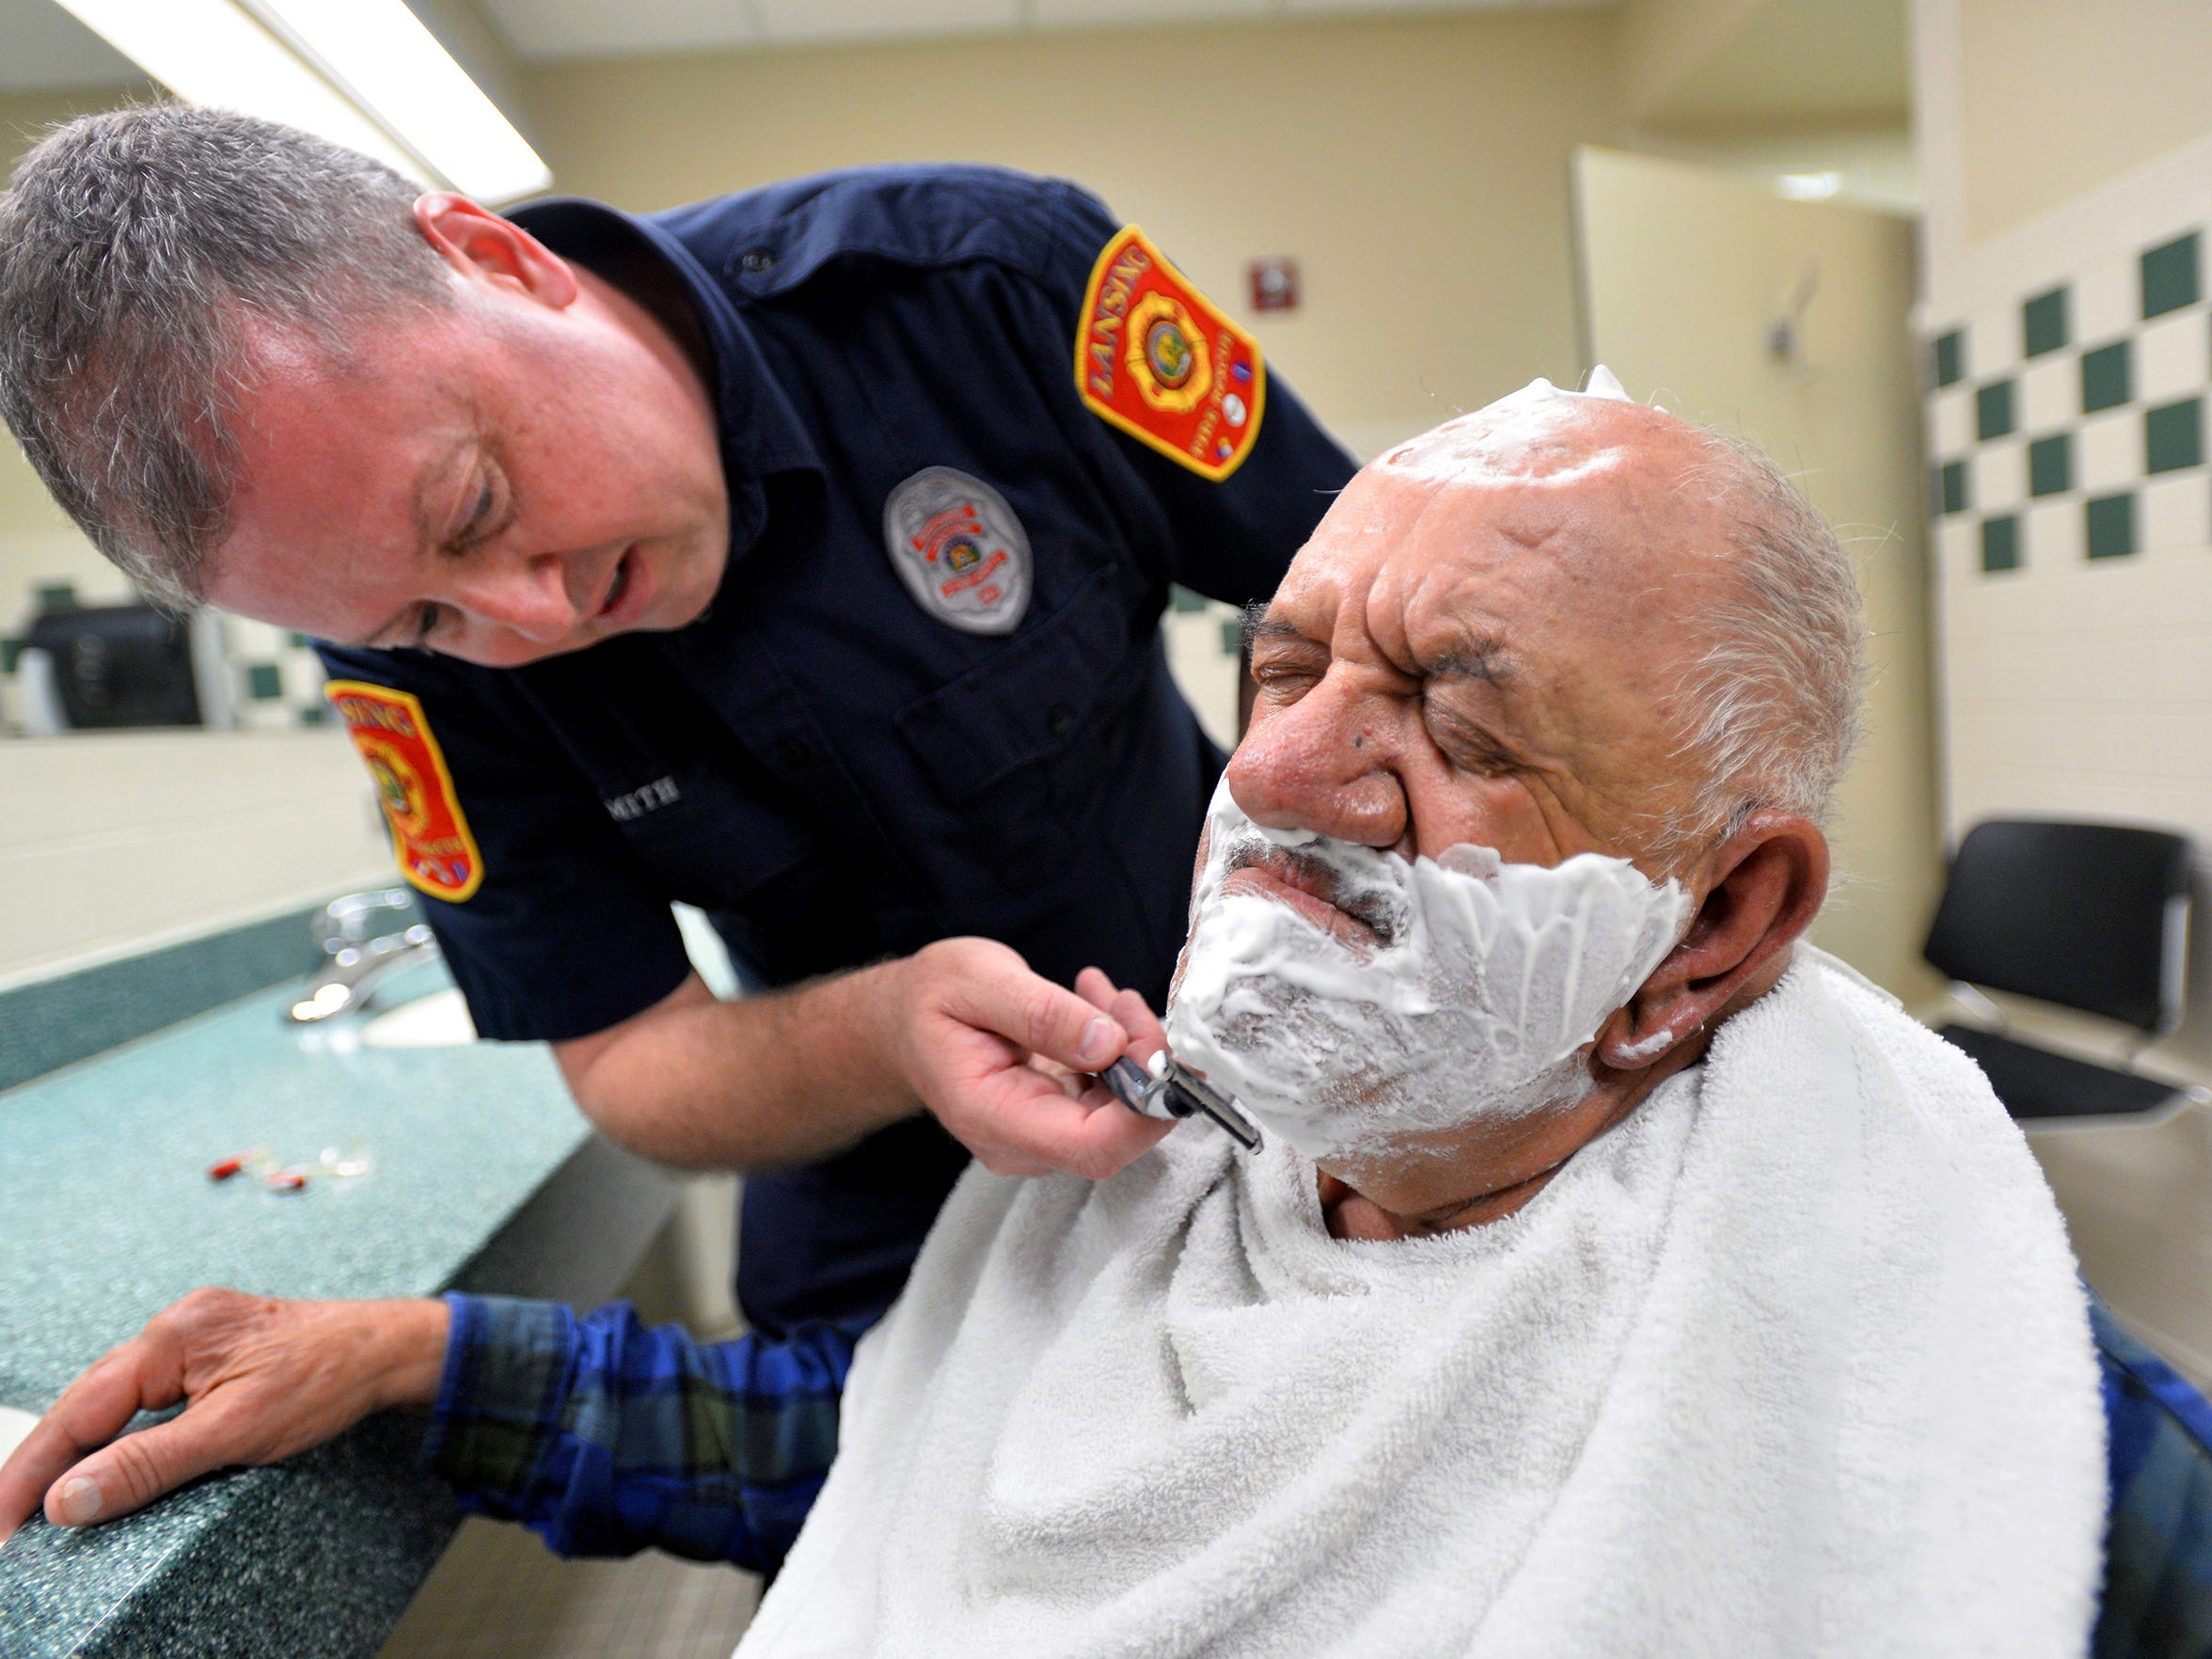 Lansing Fire Department firefighter/paramedic Greg Smith shaves Tony after convincing Tony of the need for it.  Smith and Tumminello share a close bond and constantly joke with each other, with each often telling the other they have been transferred to a closed fire station.